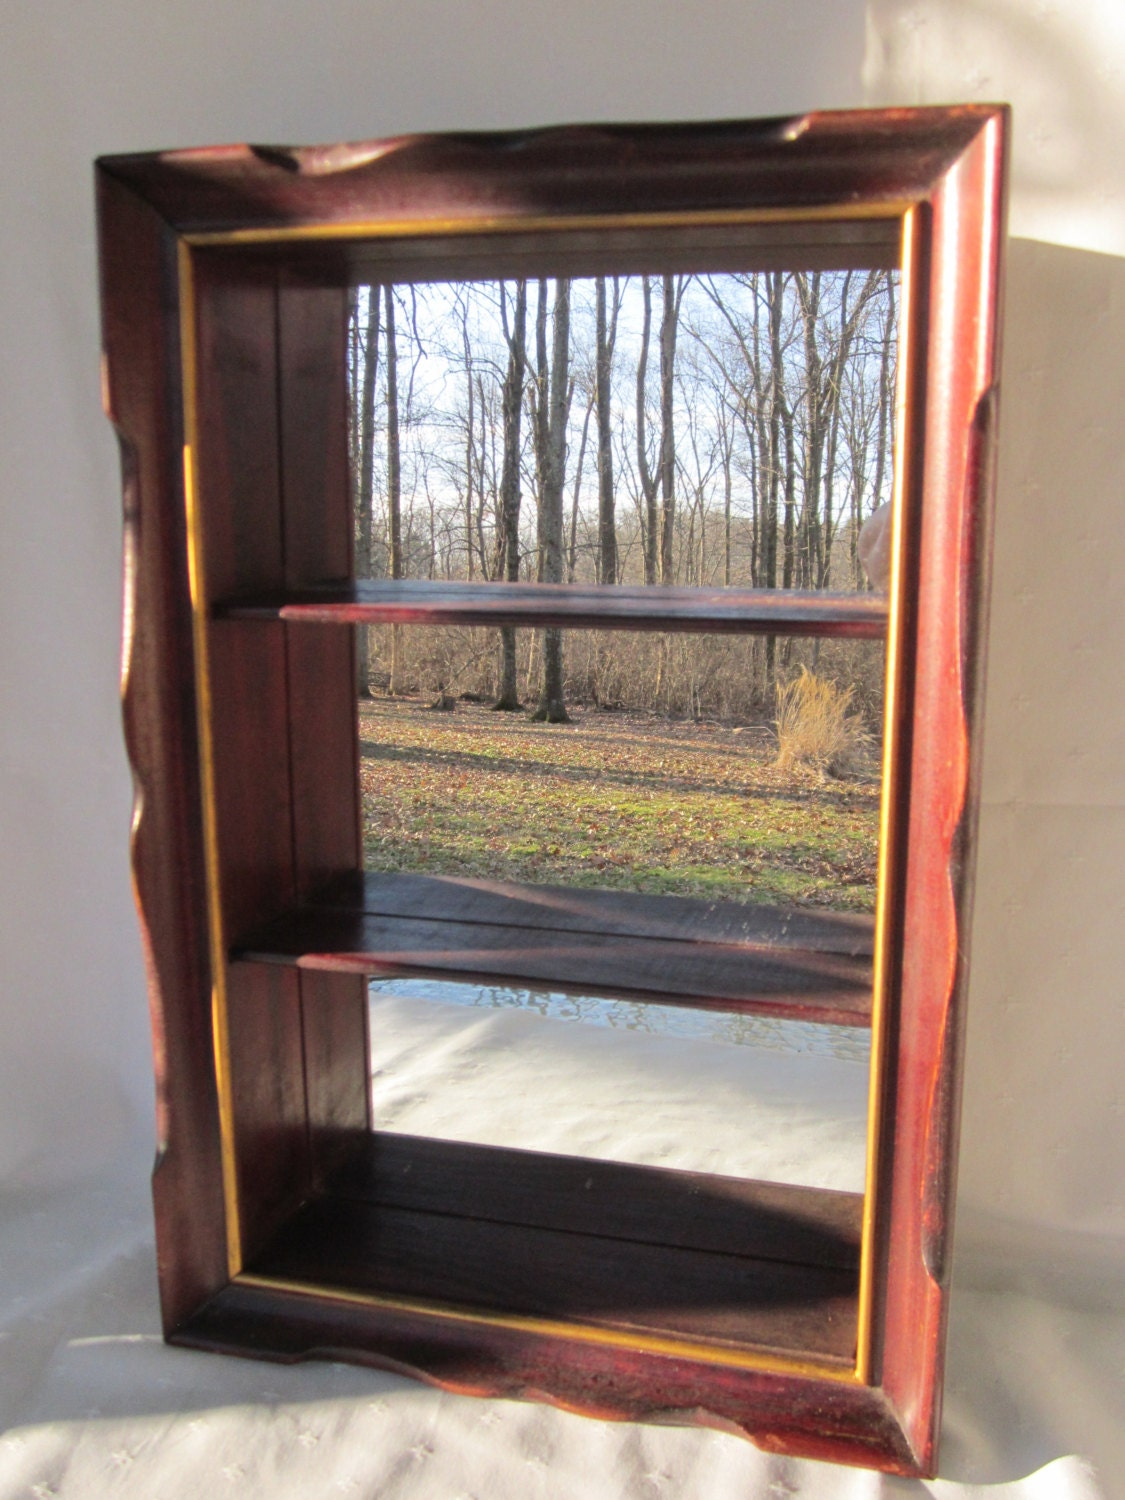 Wood shadow box wall shelf with mirror trinket display case for Mirrored box shelves